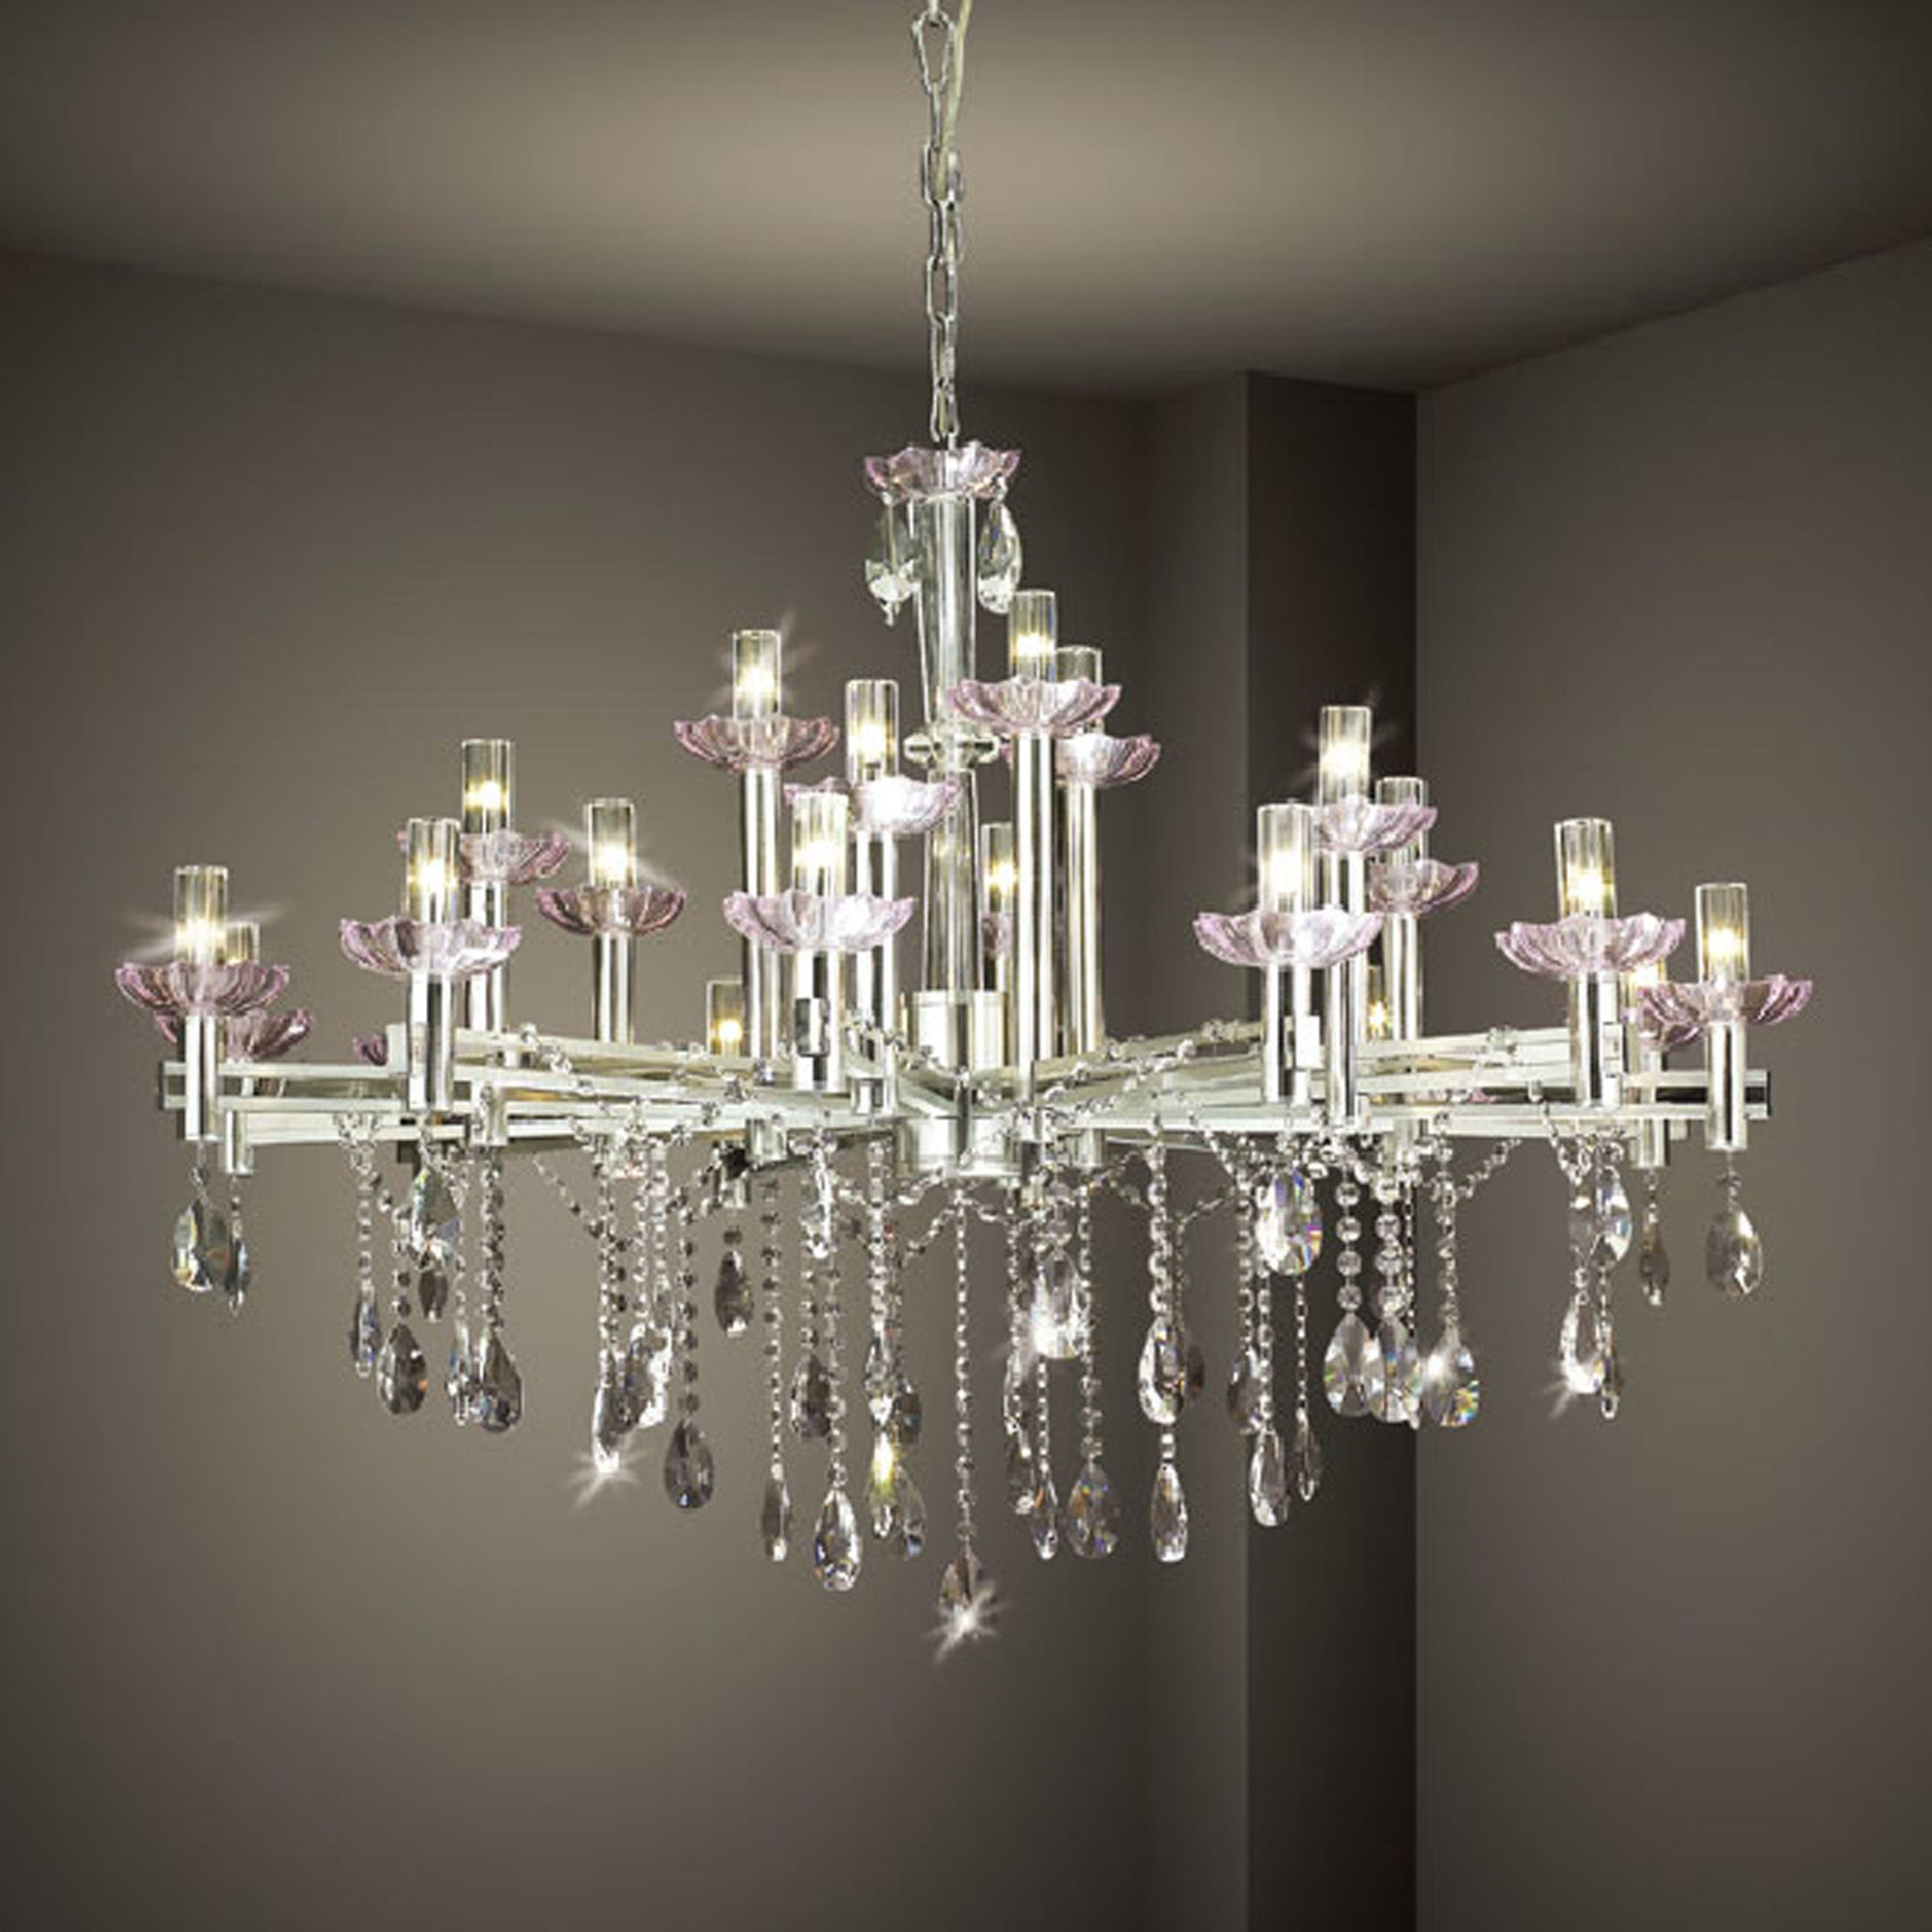 Chandelier Inspiring White Modern Chandelier White And Crystal With Regard To Modern White Chandelier (#5 of 12)